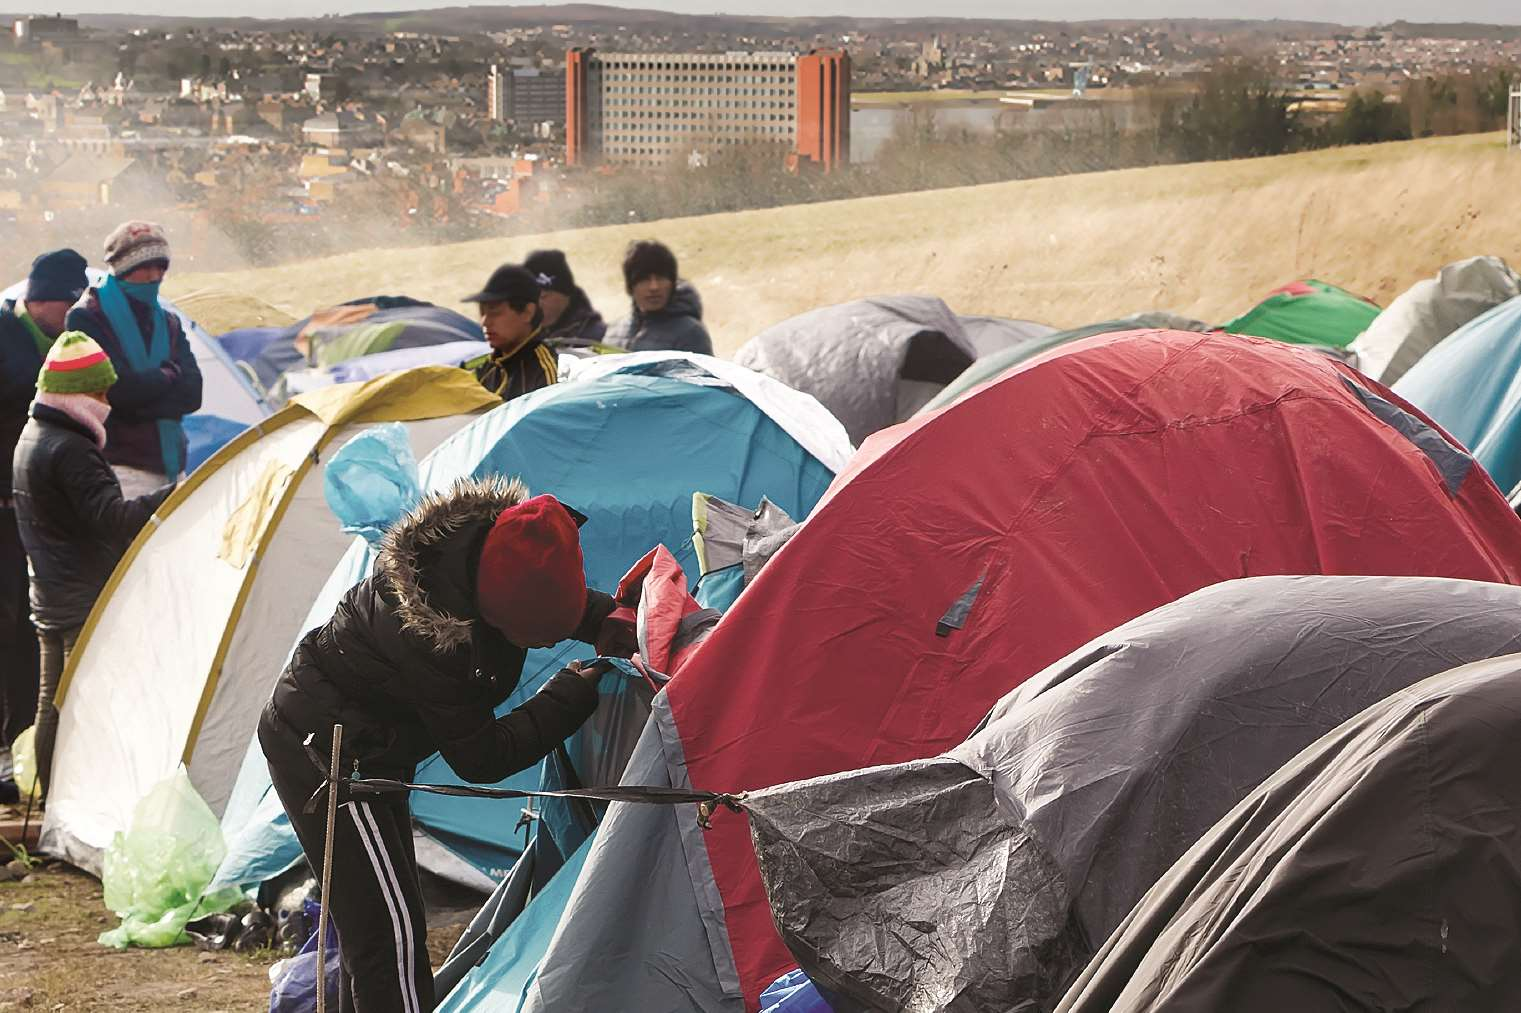 Medway Ukip leader Roy Freshwarter suggests putting refugees in tents in parks. Photoshopped image.